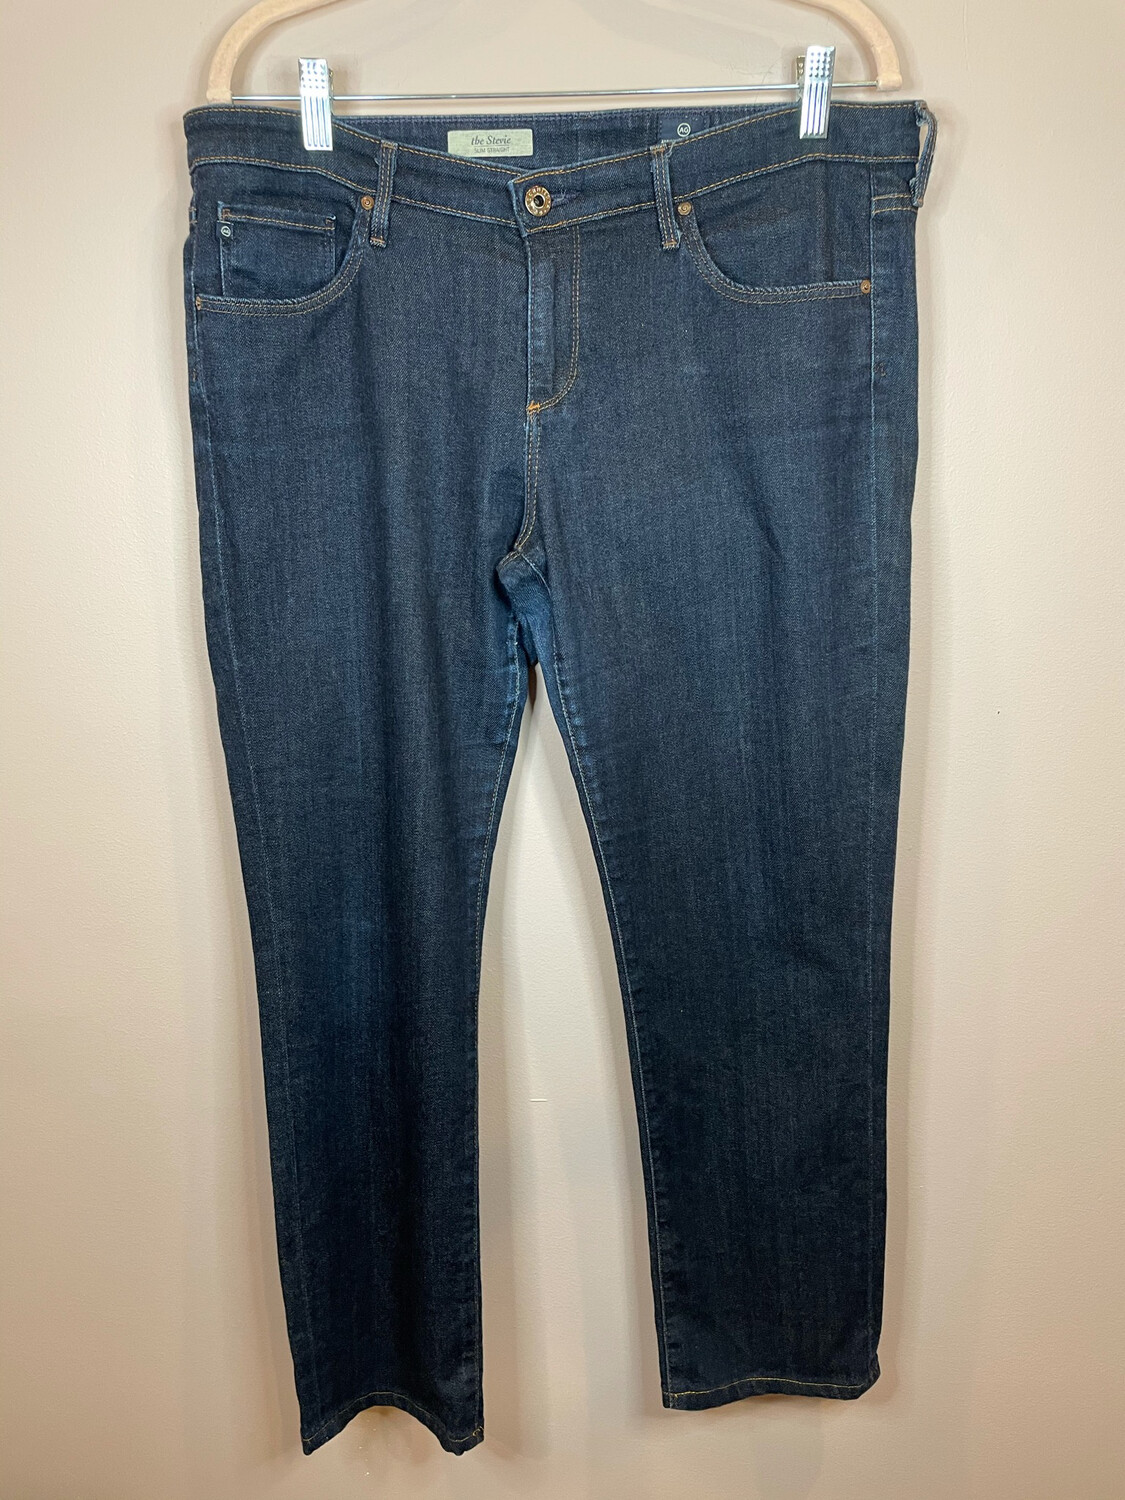 The Stevie Slim Straight - Size 32R